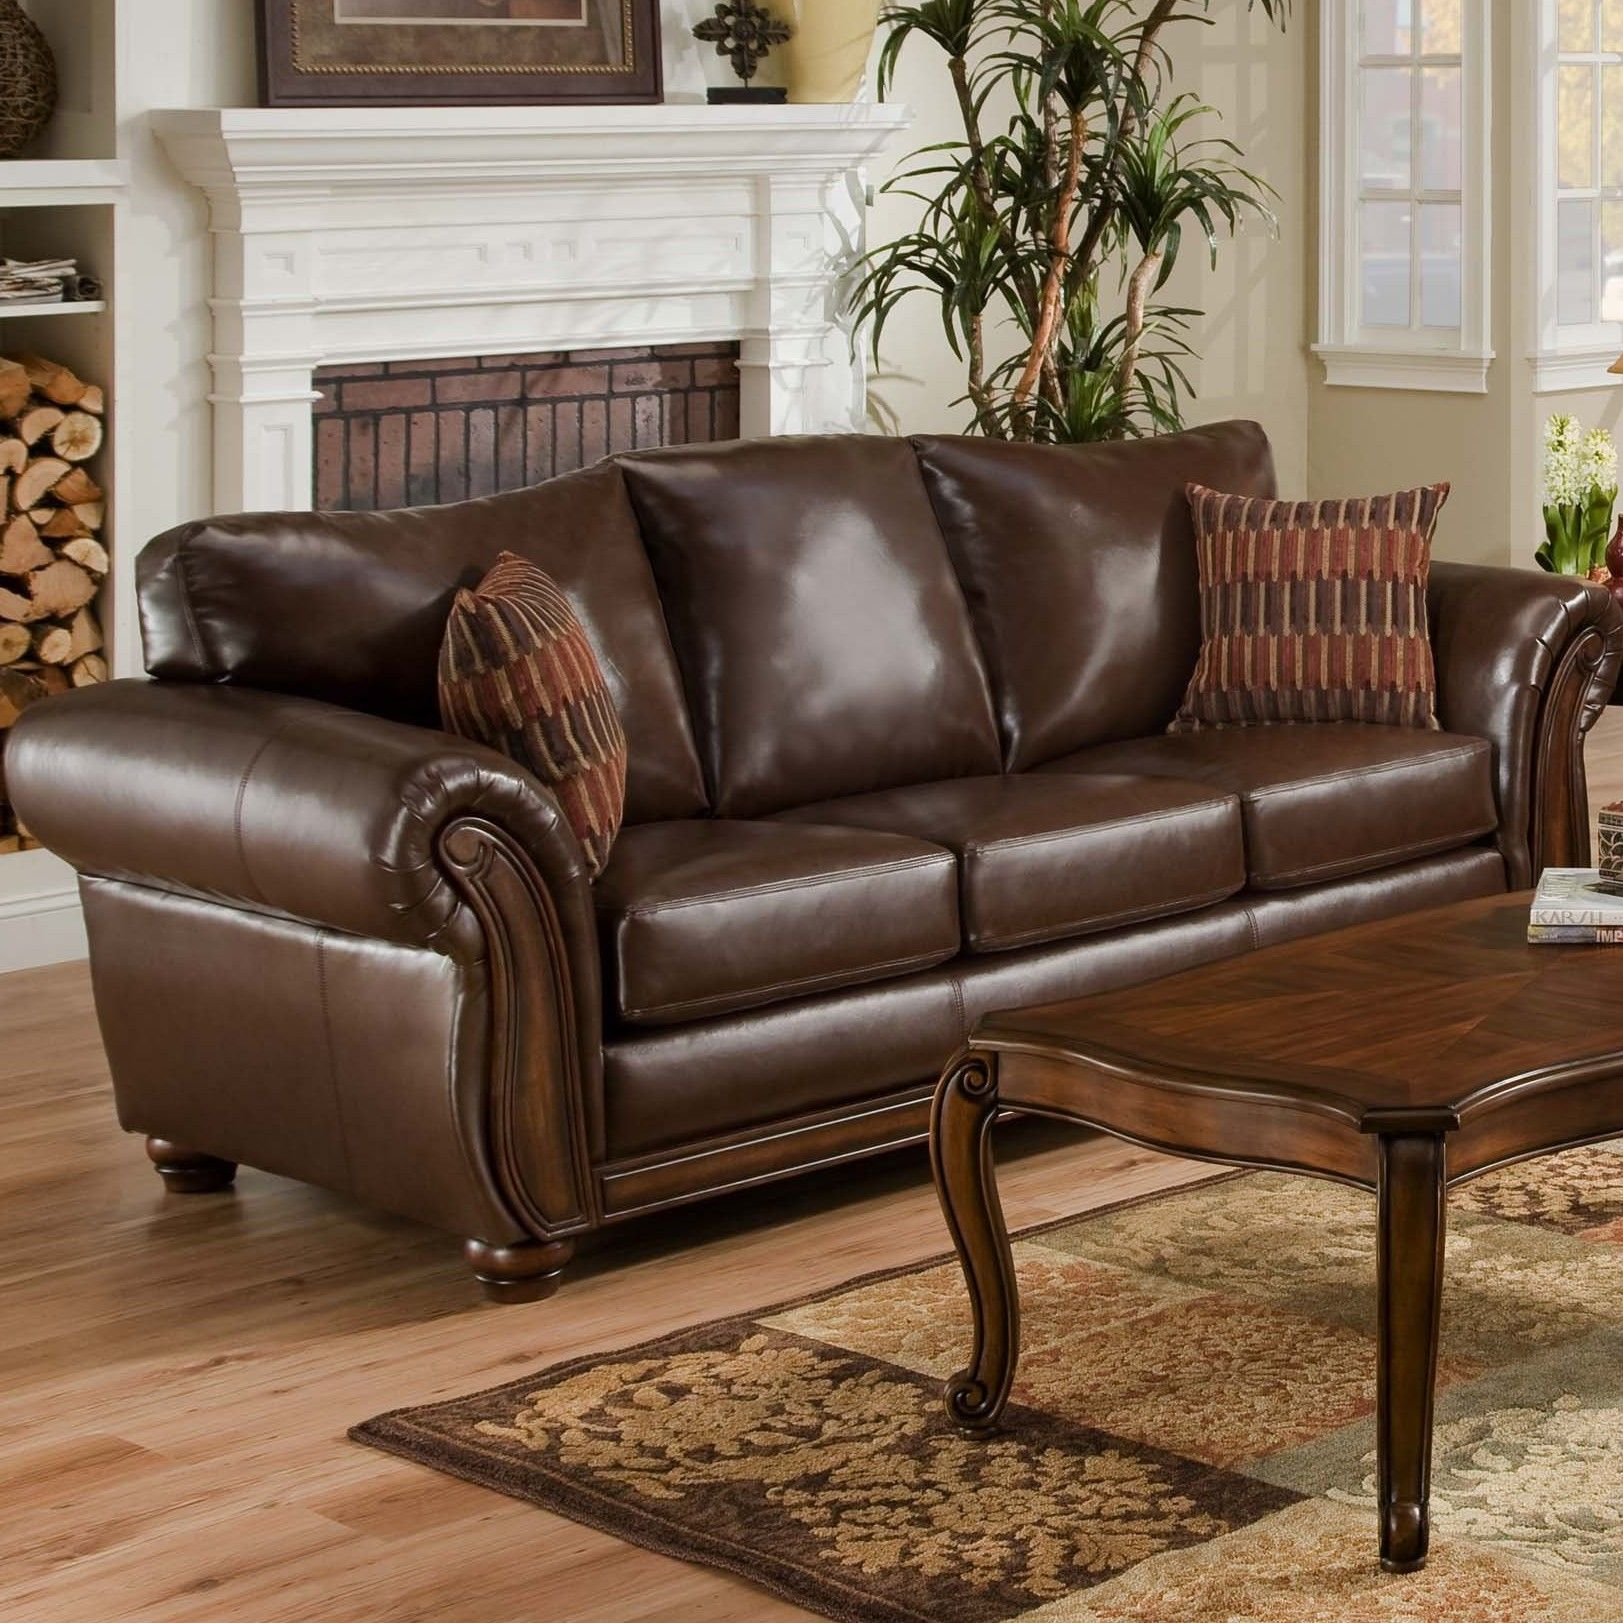 Simmons Upholstery Santa Monica Queen Sleeper Sofa Leather Sleeper Sofa Leather Sofa Sale Wayfair Living Room Furniture